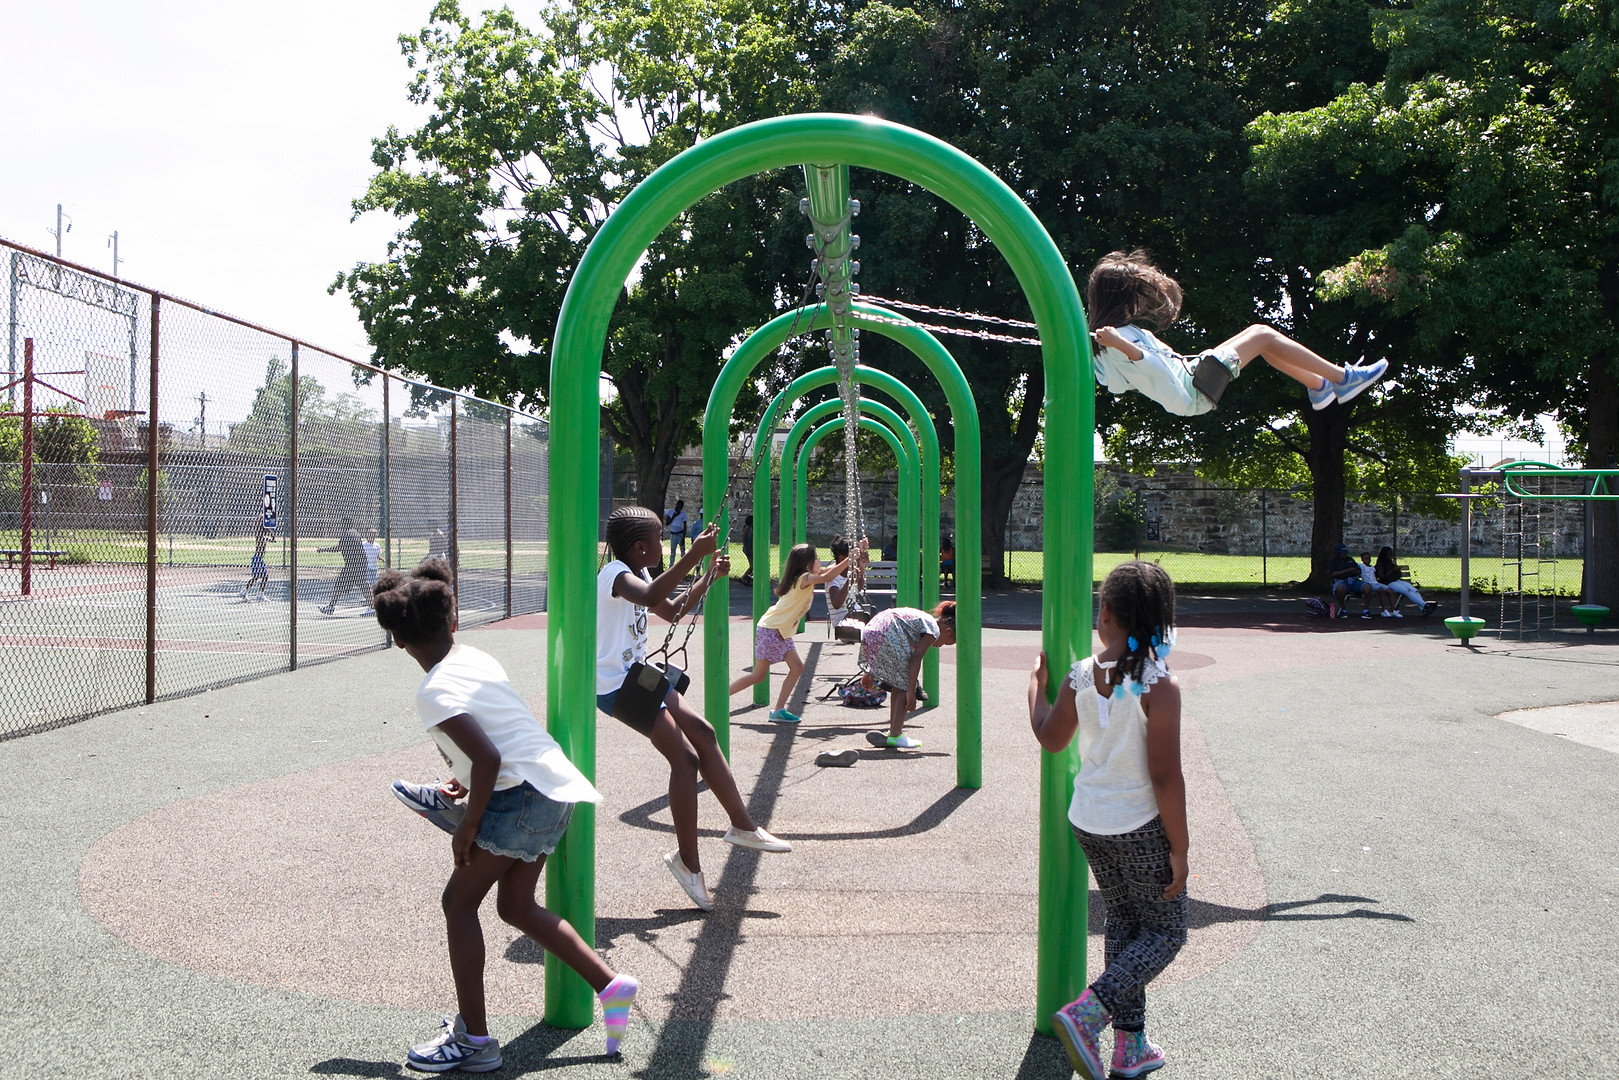 Kids from R.W. Brown Summer Camp play on the swings at Dendy Rec Center at 10th and Oxford Streets in North Philadelphia on the morning of Friday, June 29, 2018. Maggie Loesch / WHYY